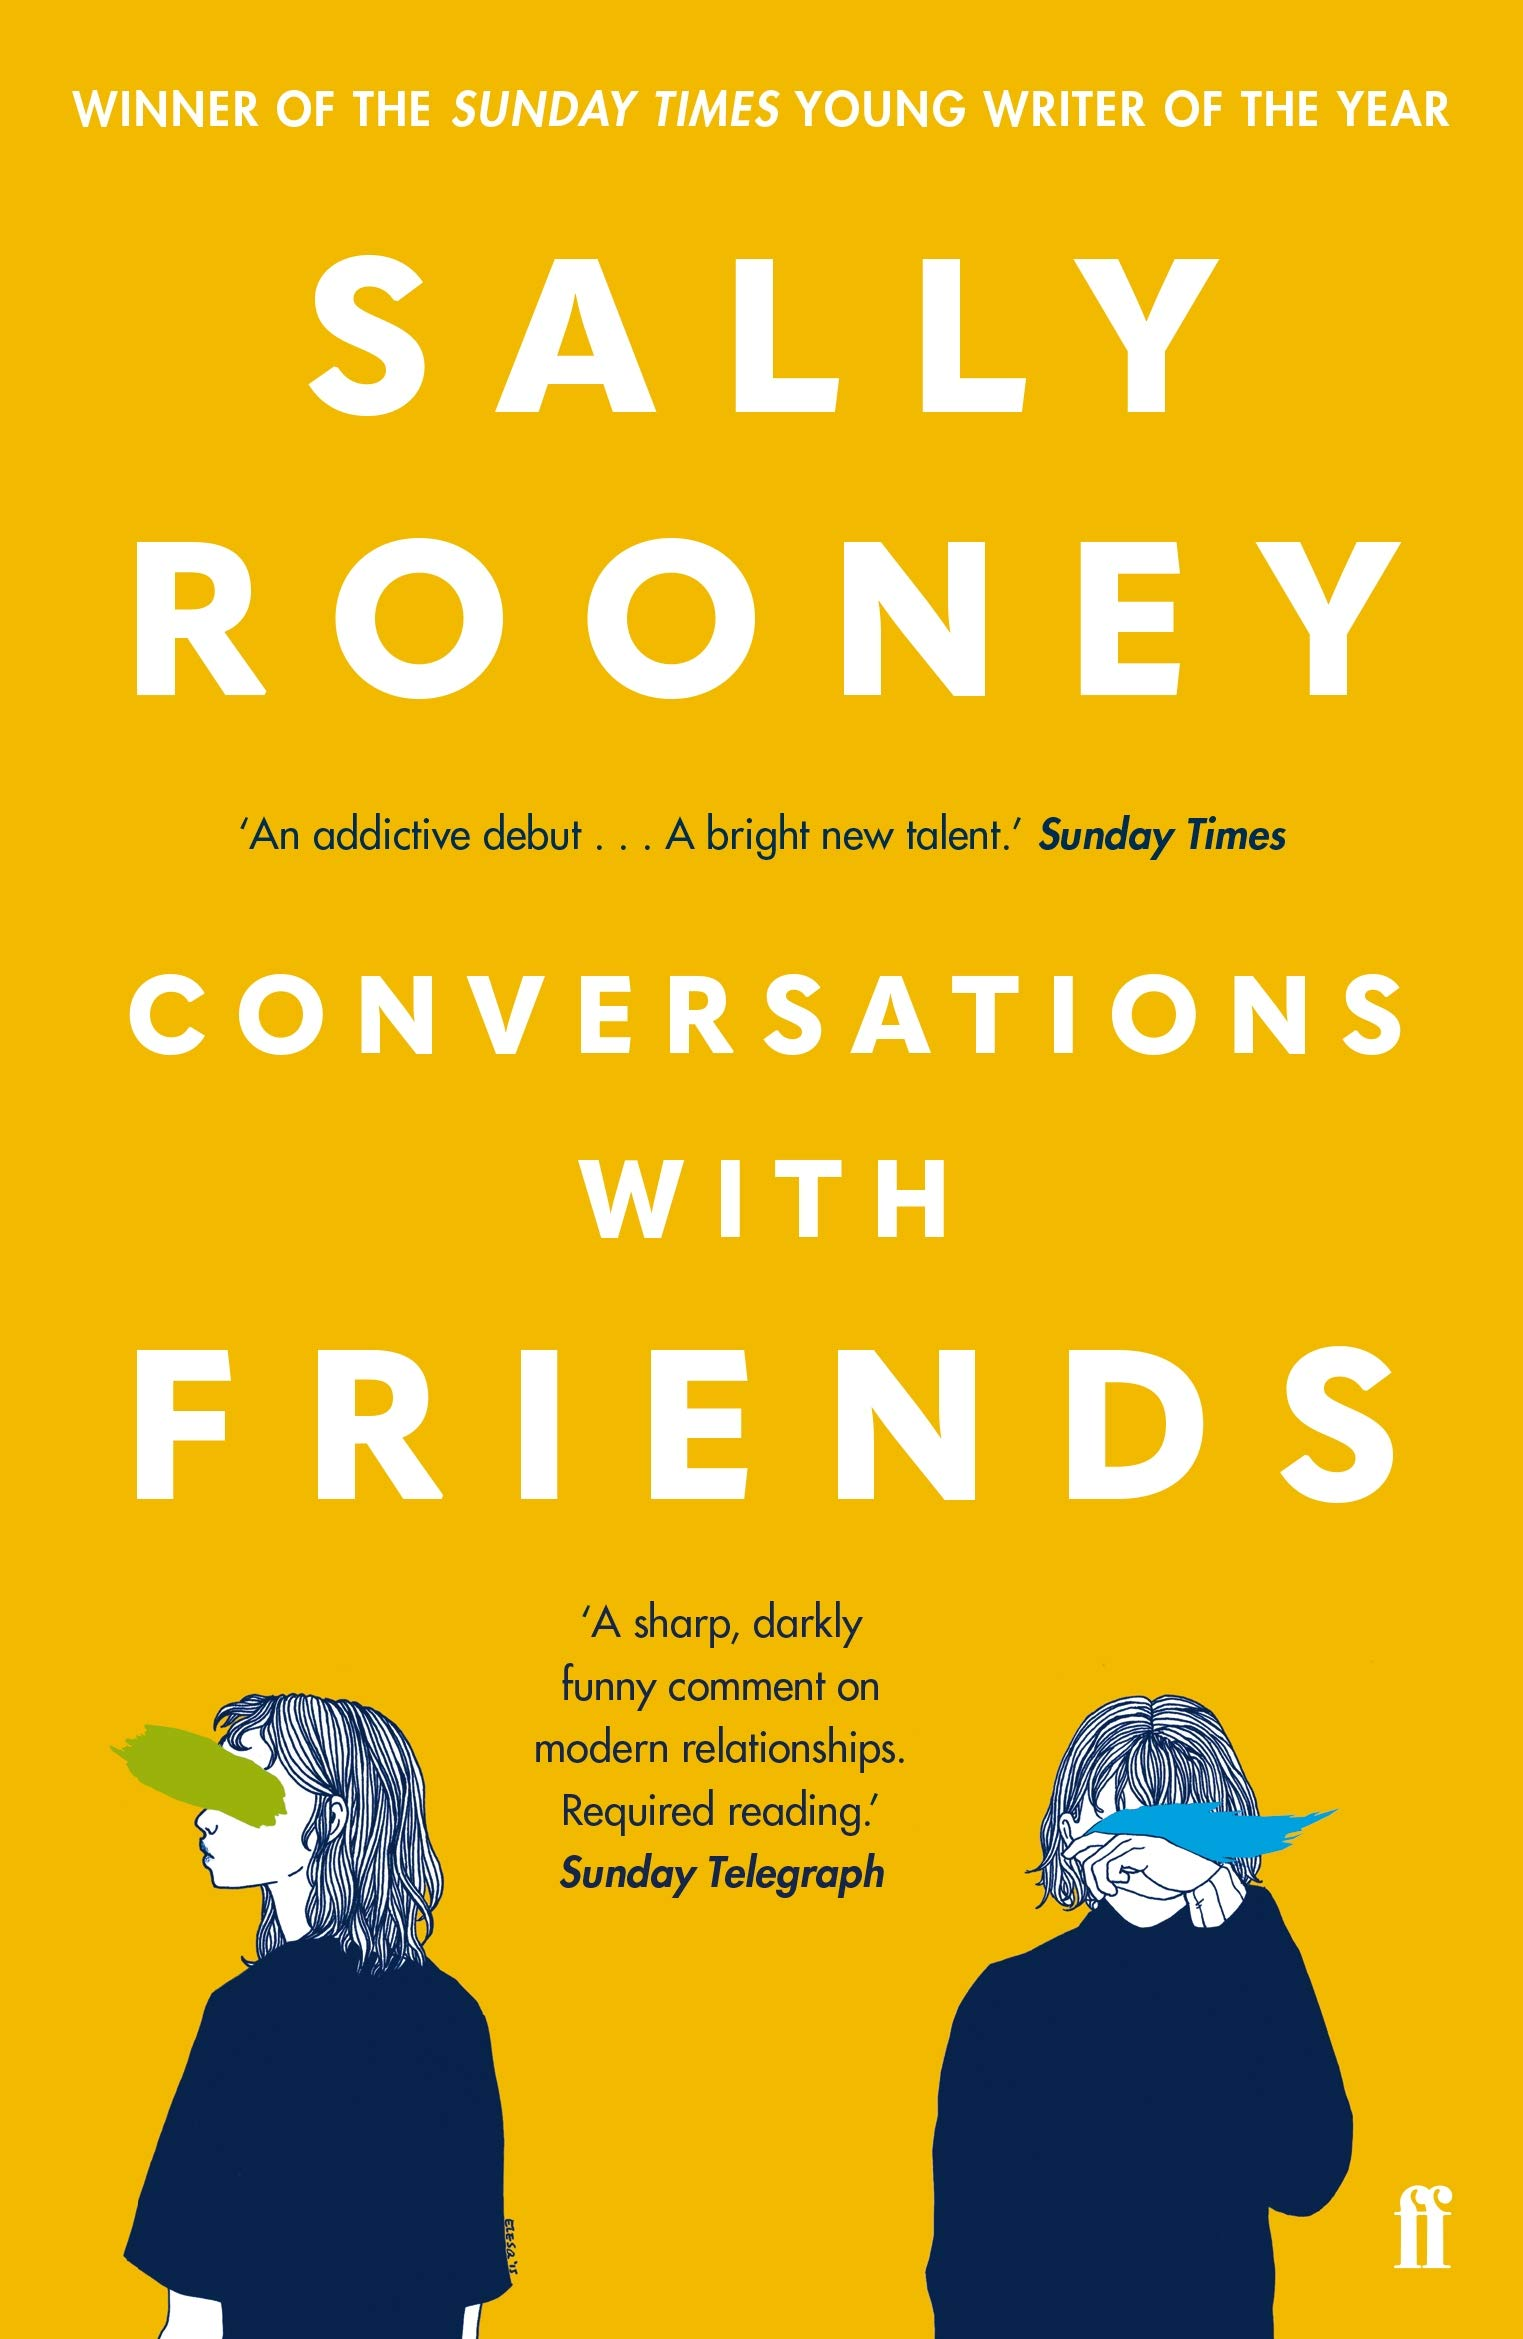 CONVERSATIONS WITH FRIENDS (181 POCHE): ROONEY SALLY: 9780571333134:  Amazon.com: Books